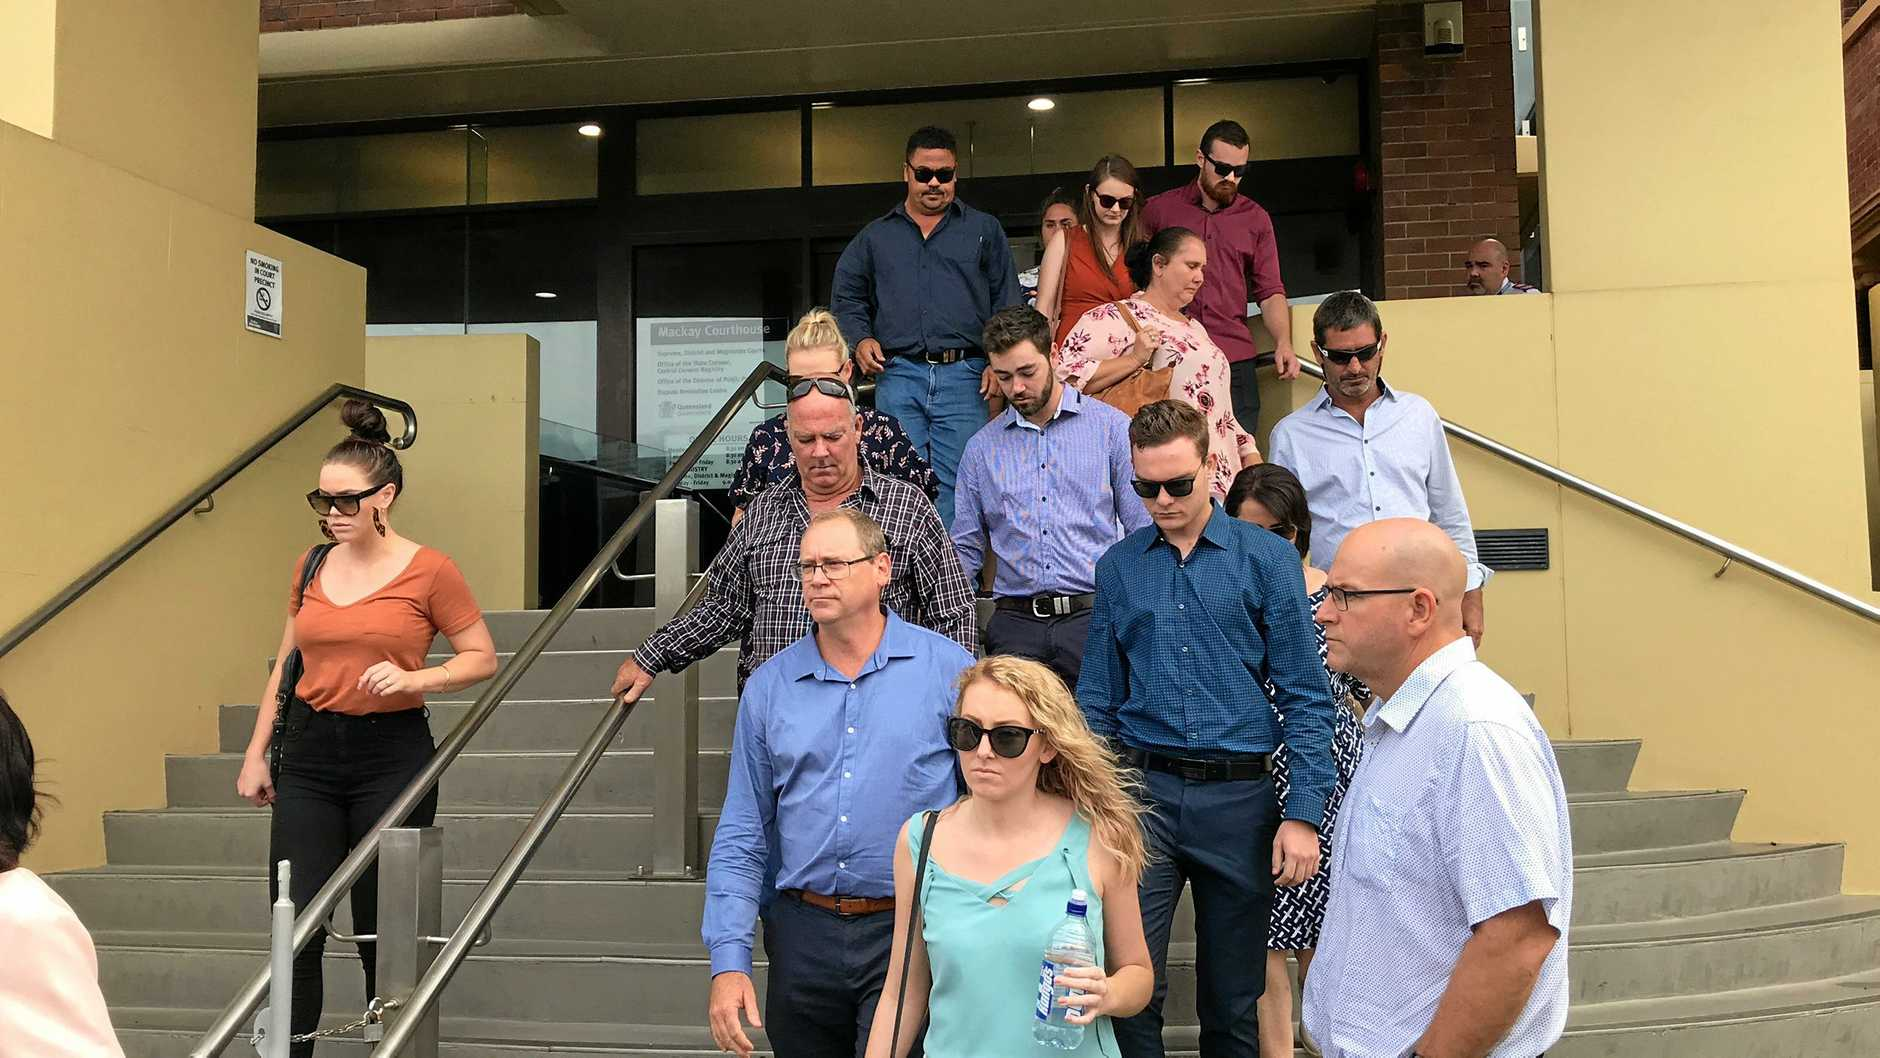 TRAGIC CASE: Zachary Ty Gaston, 21, (middle in light blue shirt) leaves Mackay Courthouse surrounded by loved ones after pleading guilty to a fatal crash that killed his mate at Eungella in 2017.